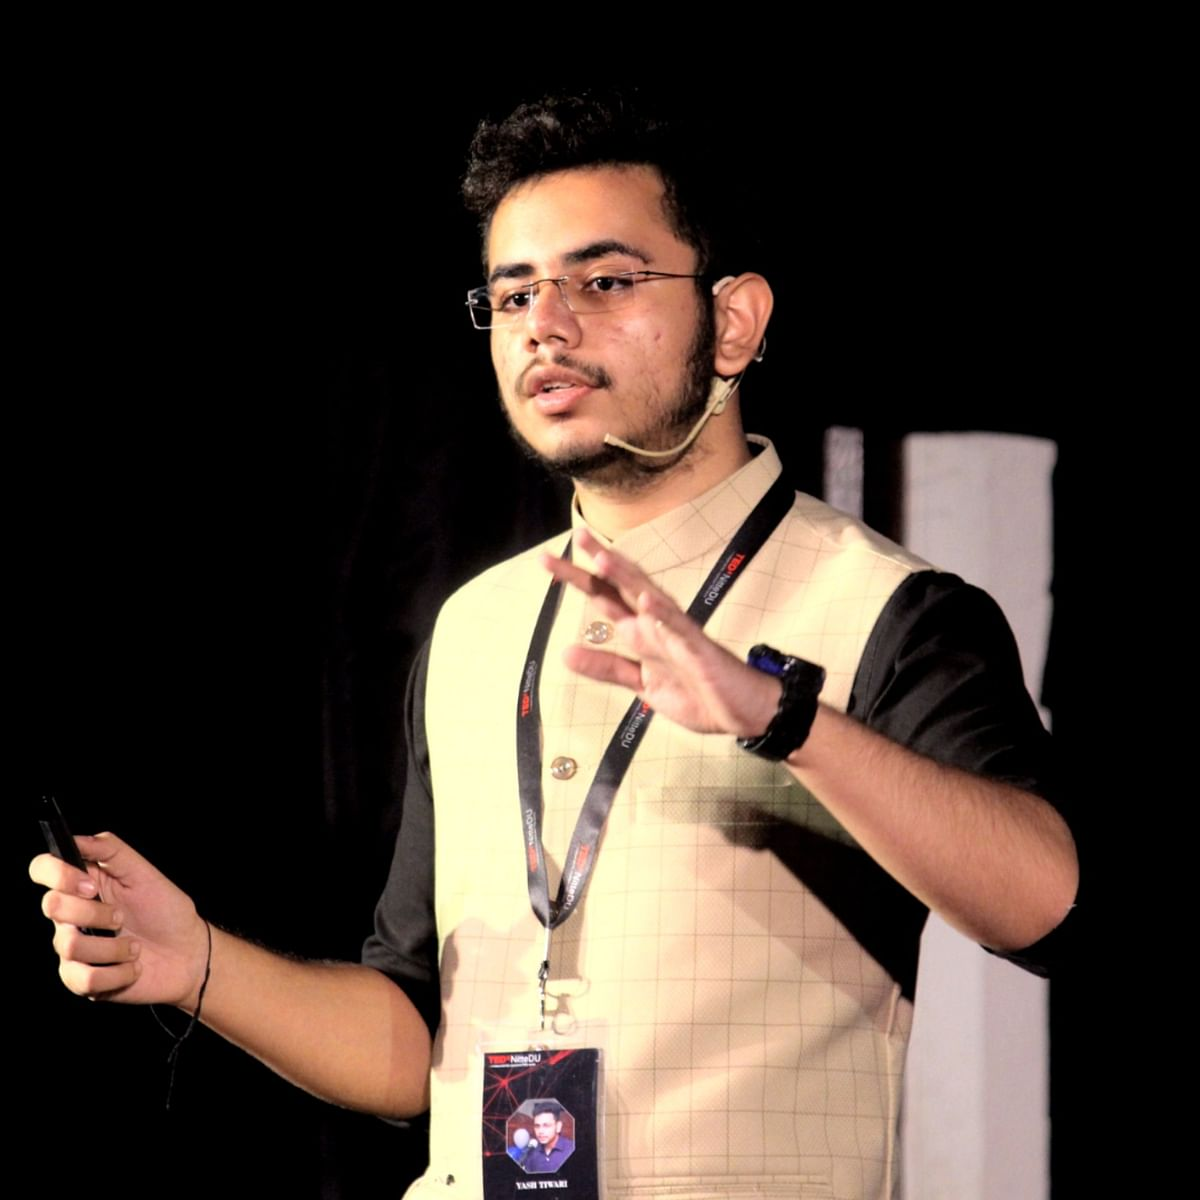 Kanpur's Yash Tiwari is youngest to pen down novel on COVID-19 pandemic. And in 30 days flat!